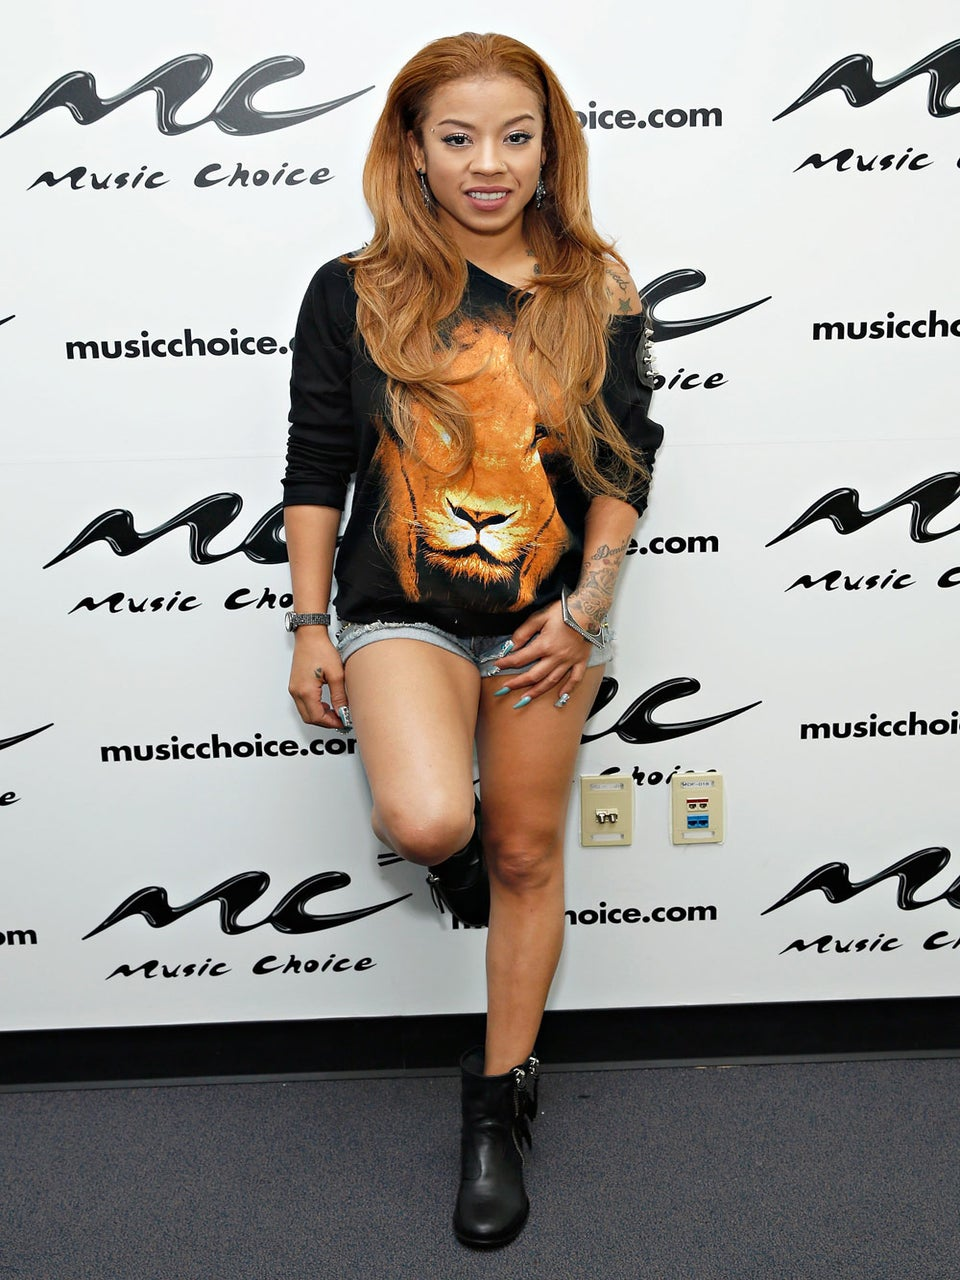 Keyshia Cole Arrested for Allegedly Assaulting Woman in Birdman's Home